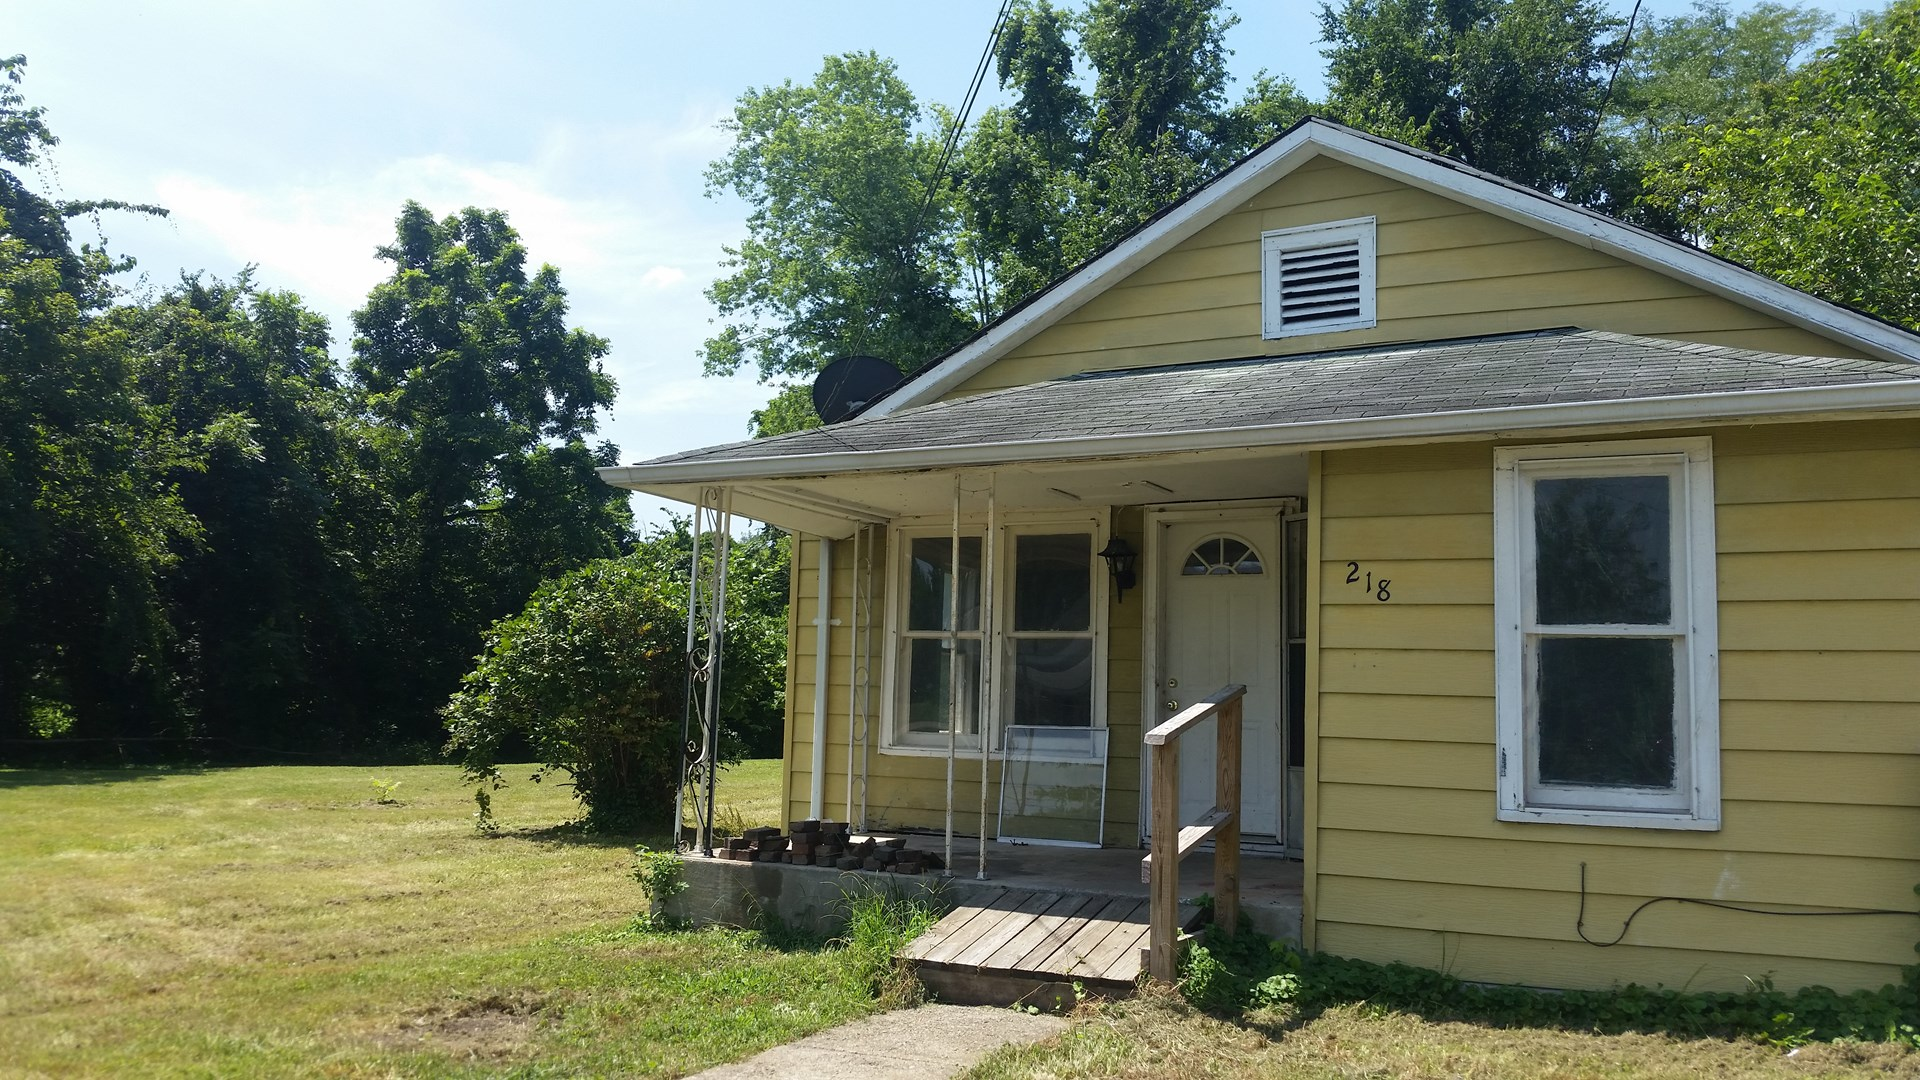 For Sale: 2 Bedroom 1 bath home on quiet street with huge ya